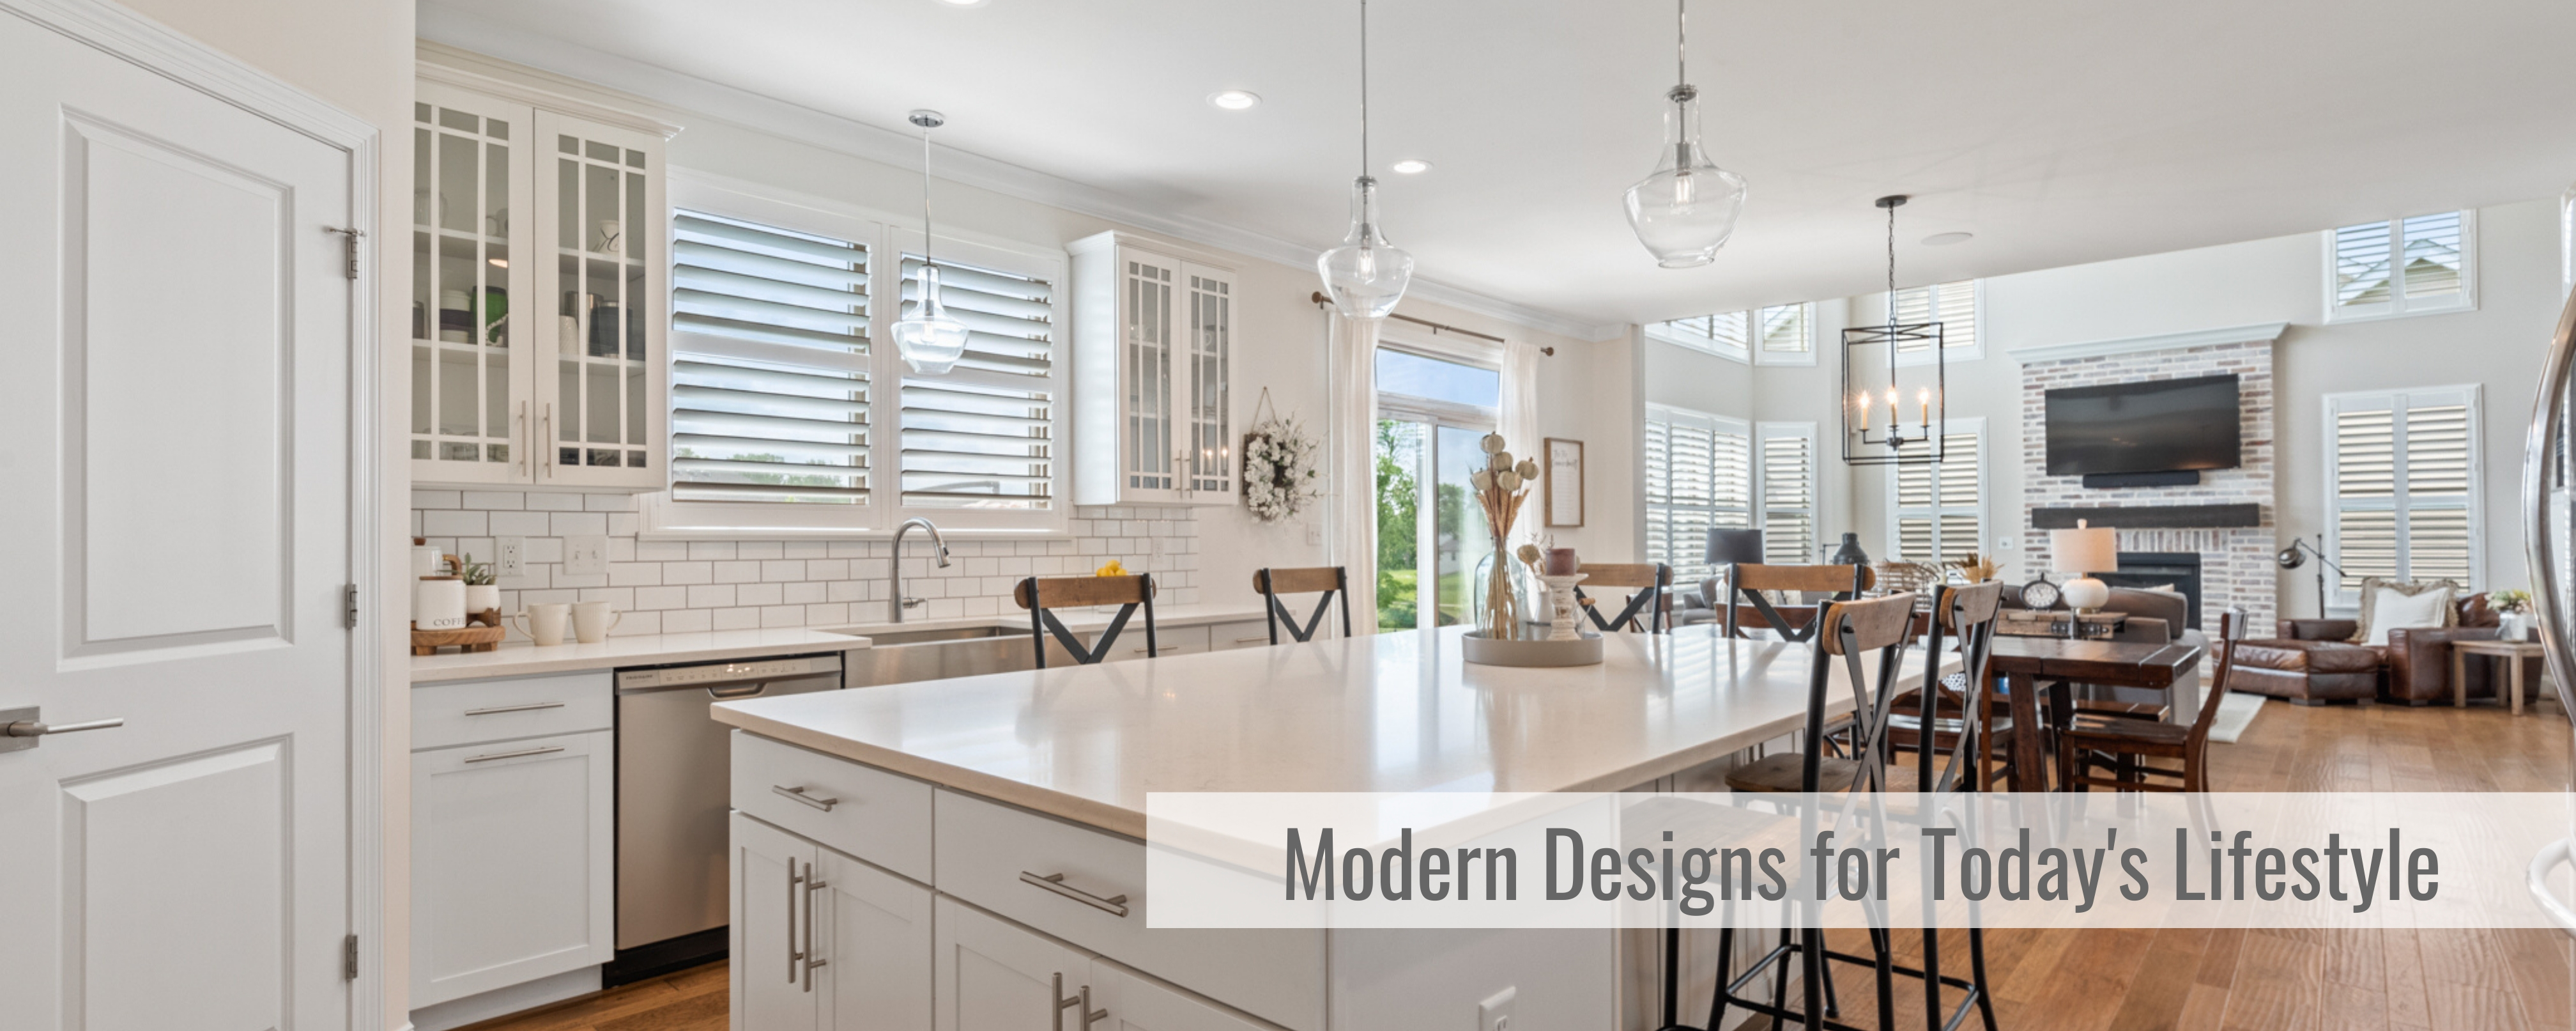 Modern Designs for Today's Lifestyle